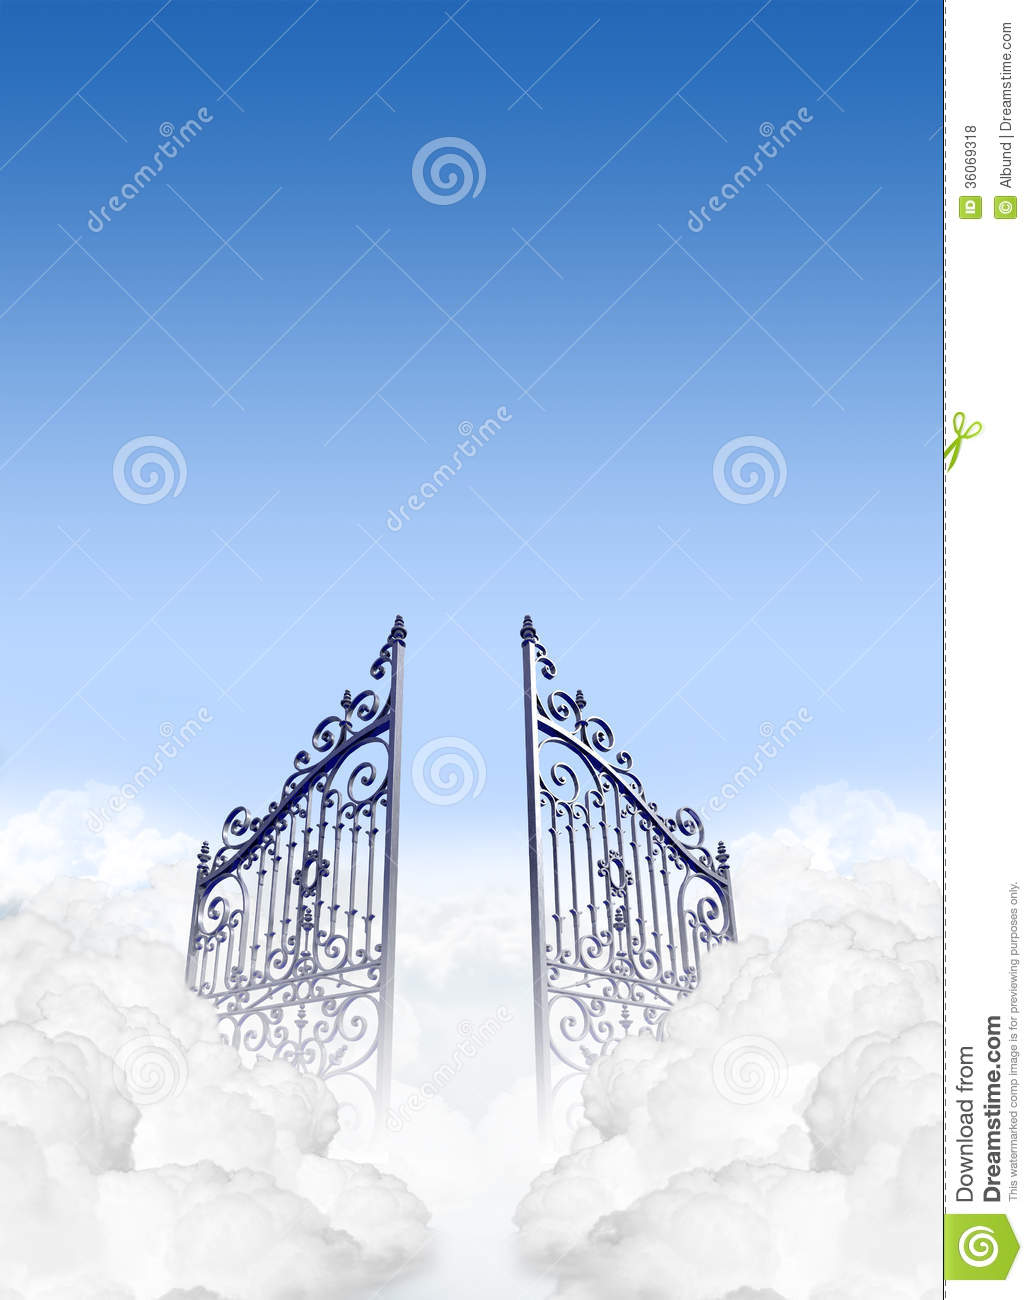 Depiction Of The Gates To Heaven In The Clouds Open Under A Clear